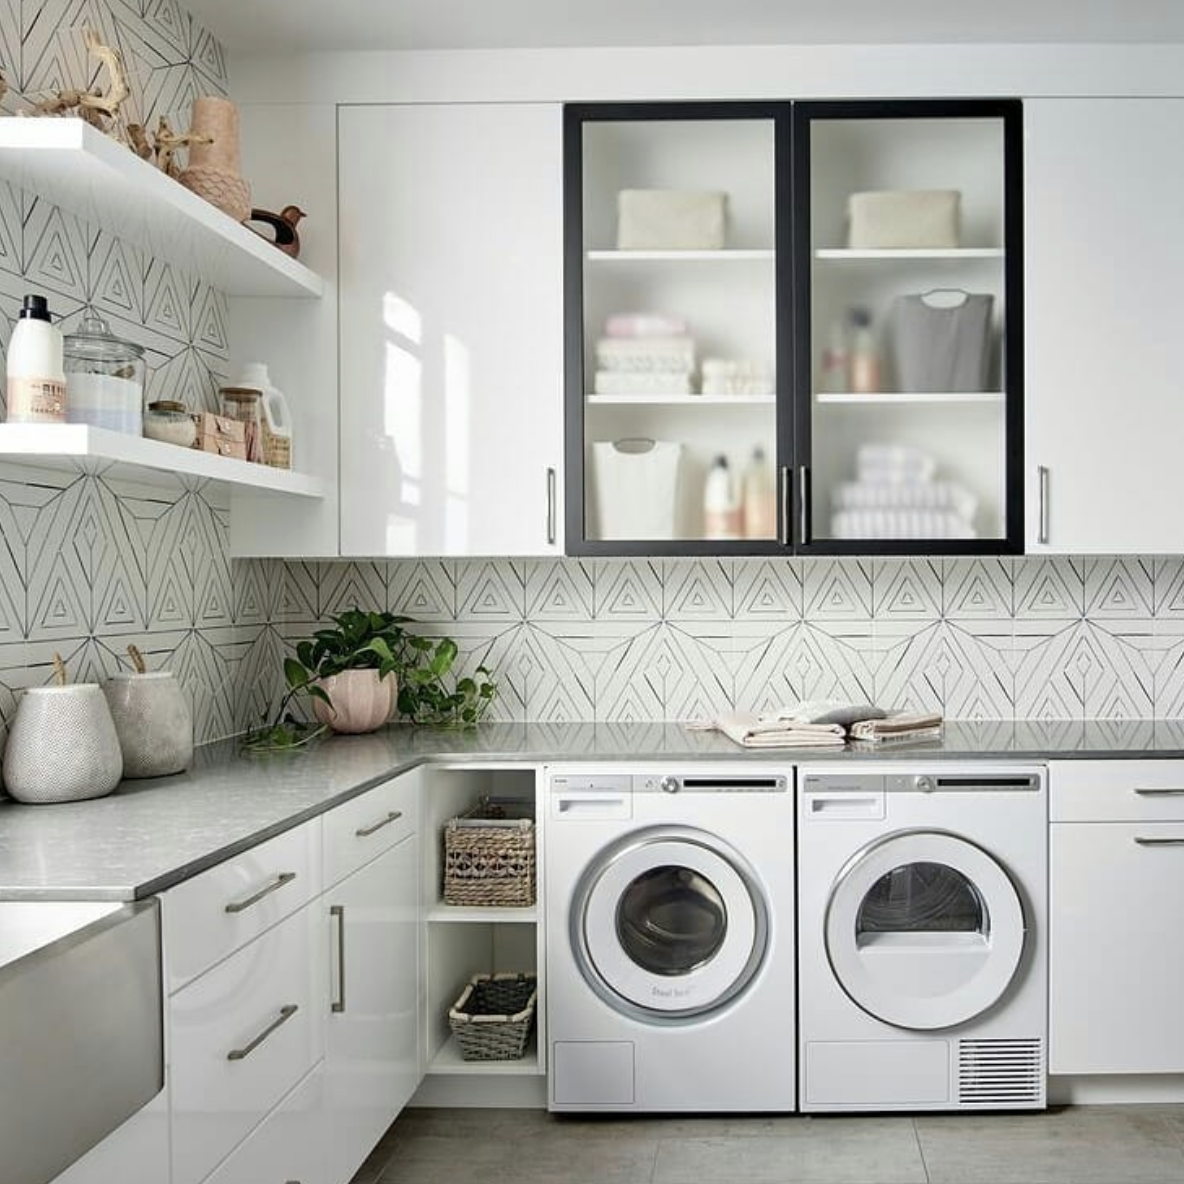 Hartland Kitchen And Laundry Room Remodel: 5 Organised Laundry Designs To Inspire You